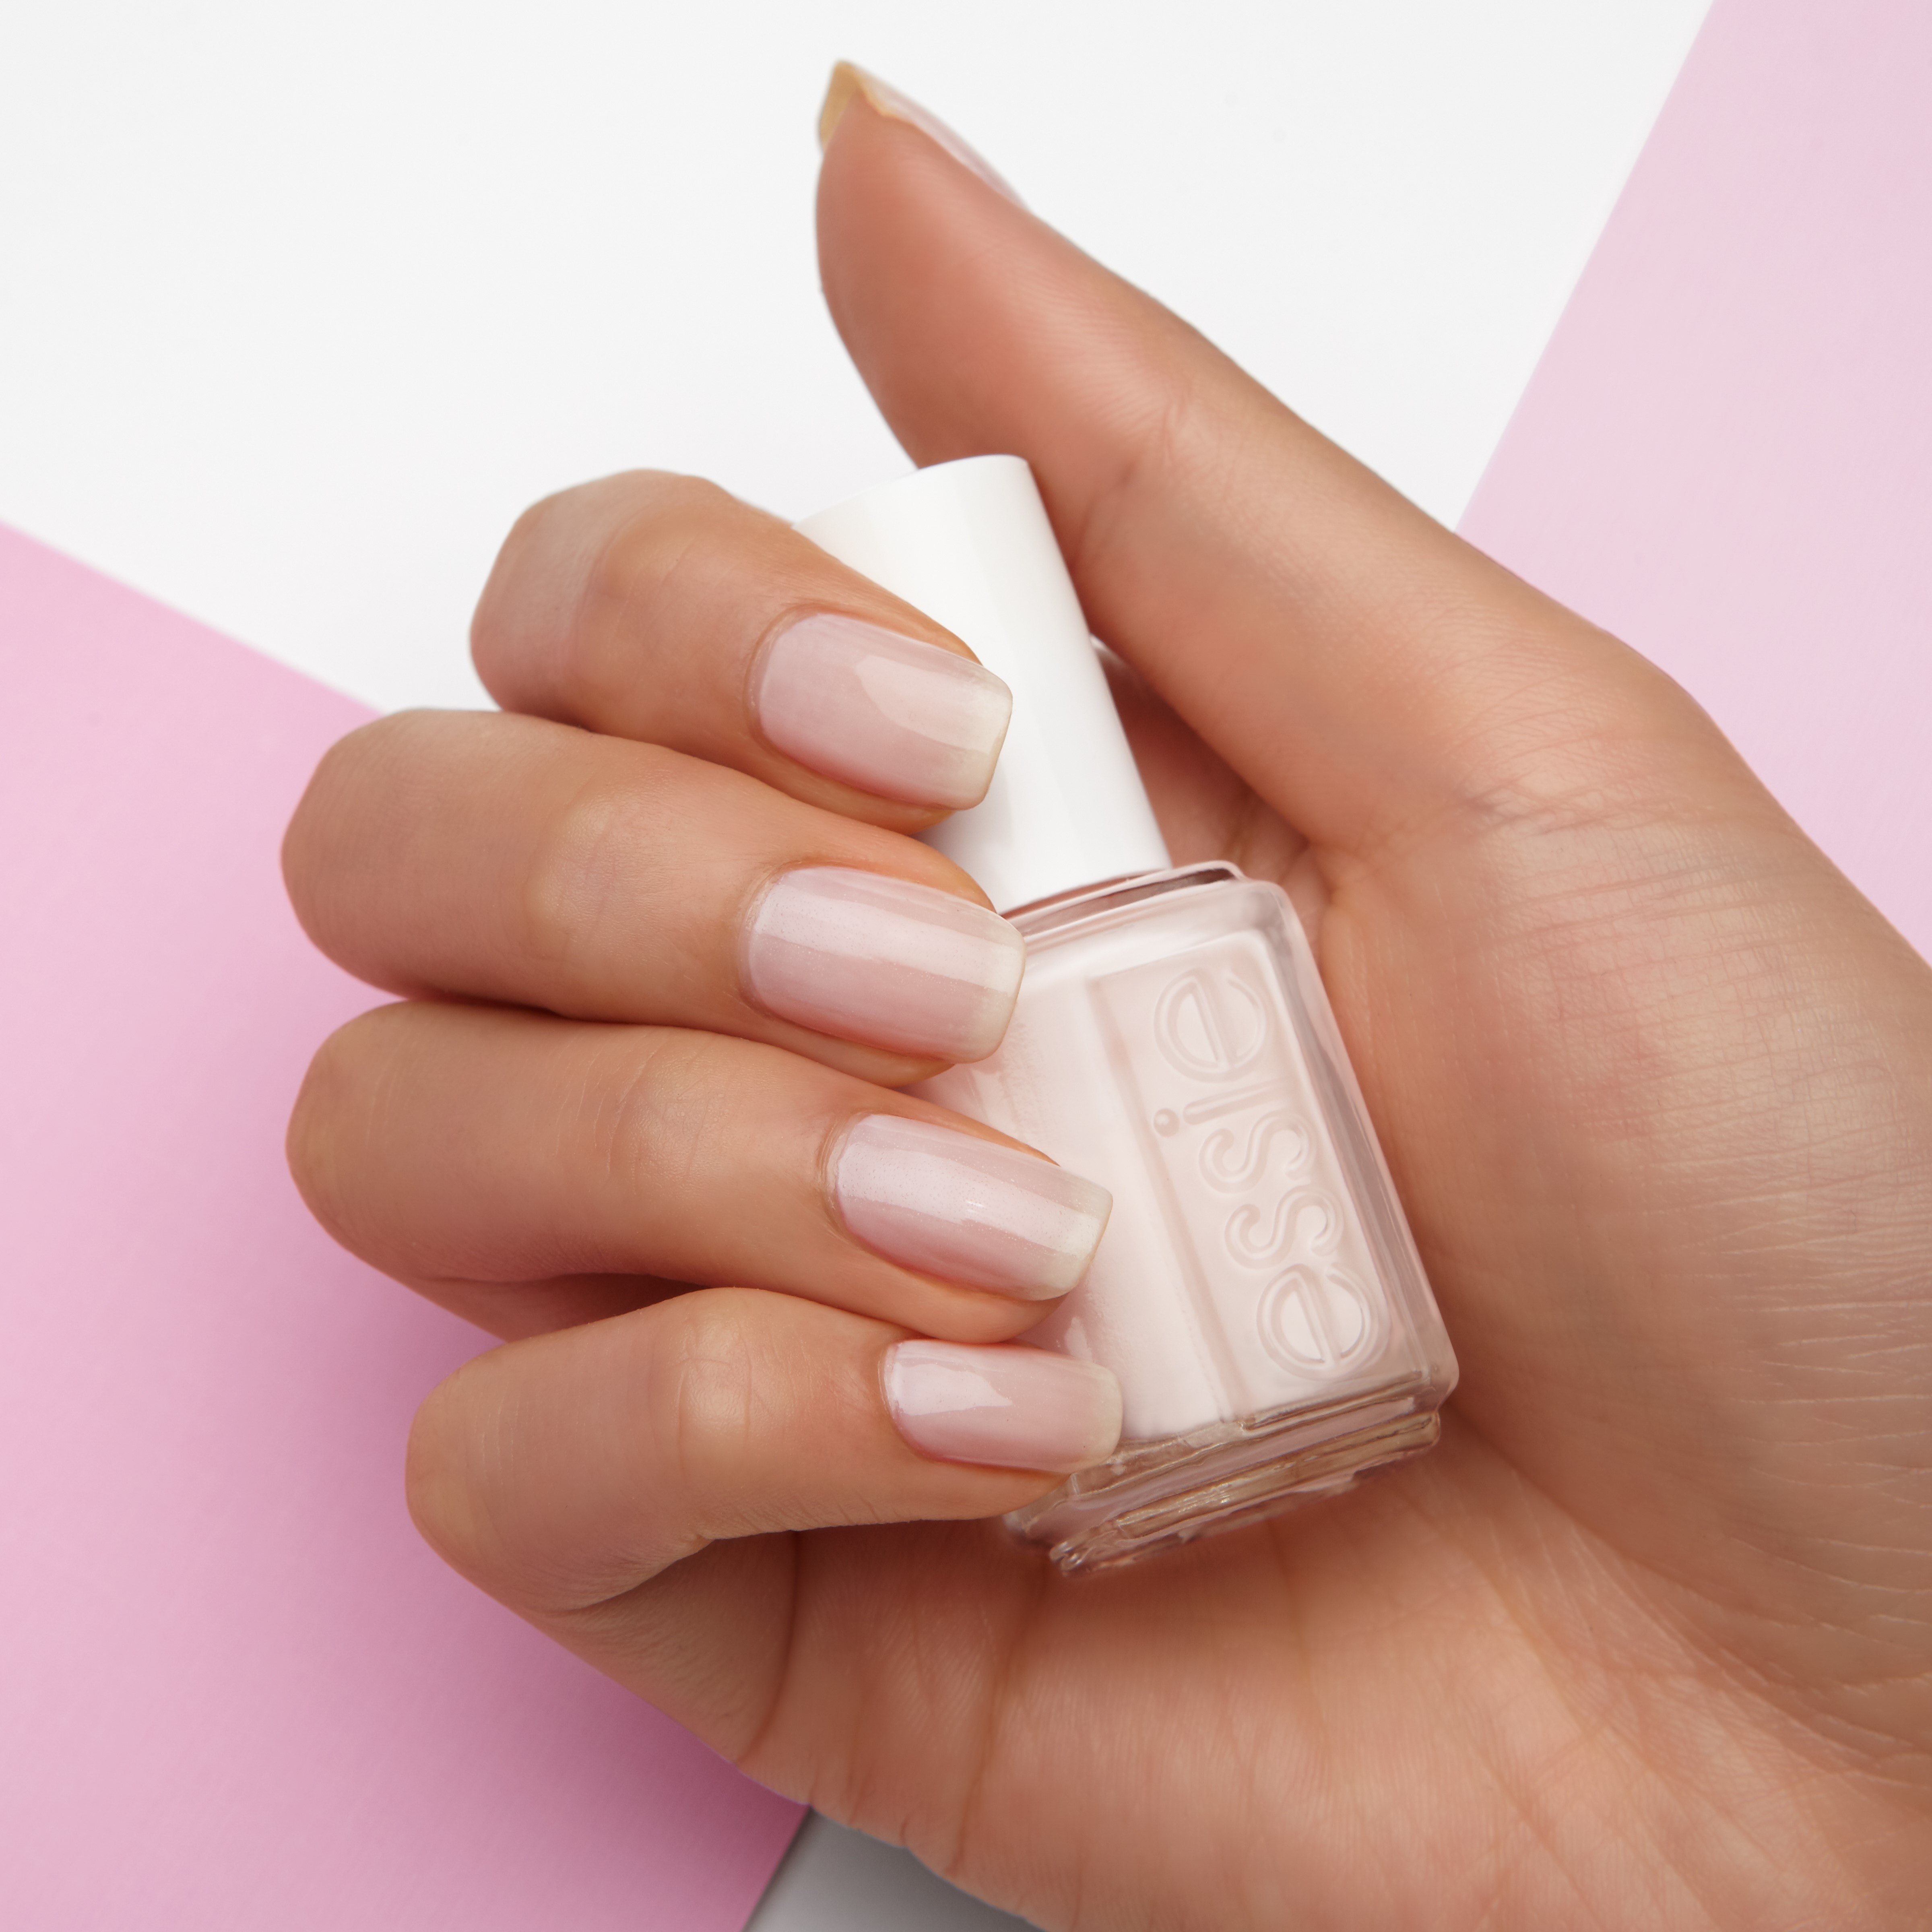 Why Essie Ballet Slippers Nail Polish Is Sold 818 Times Per Day